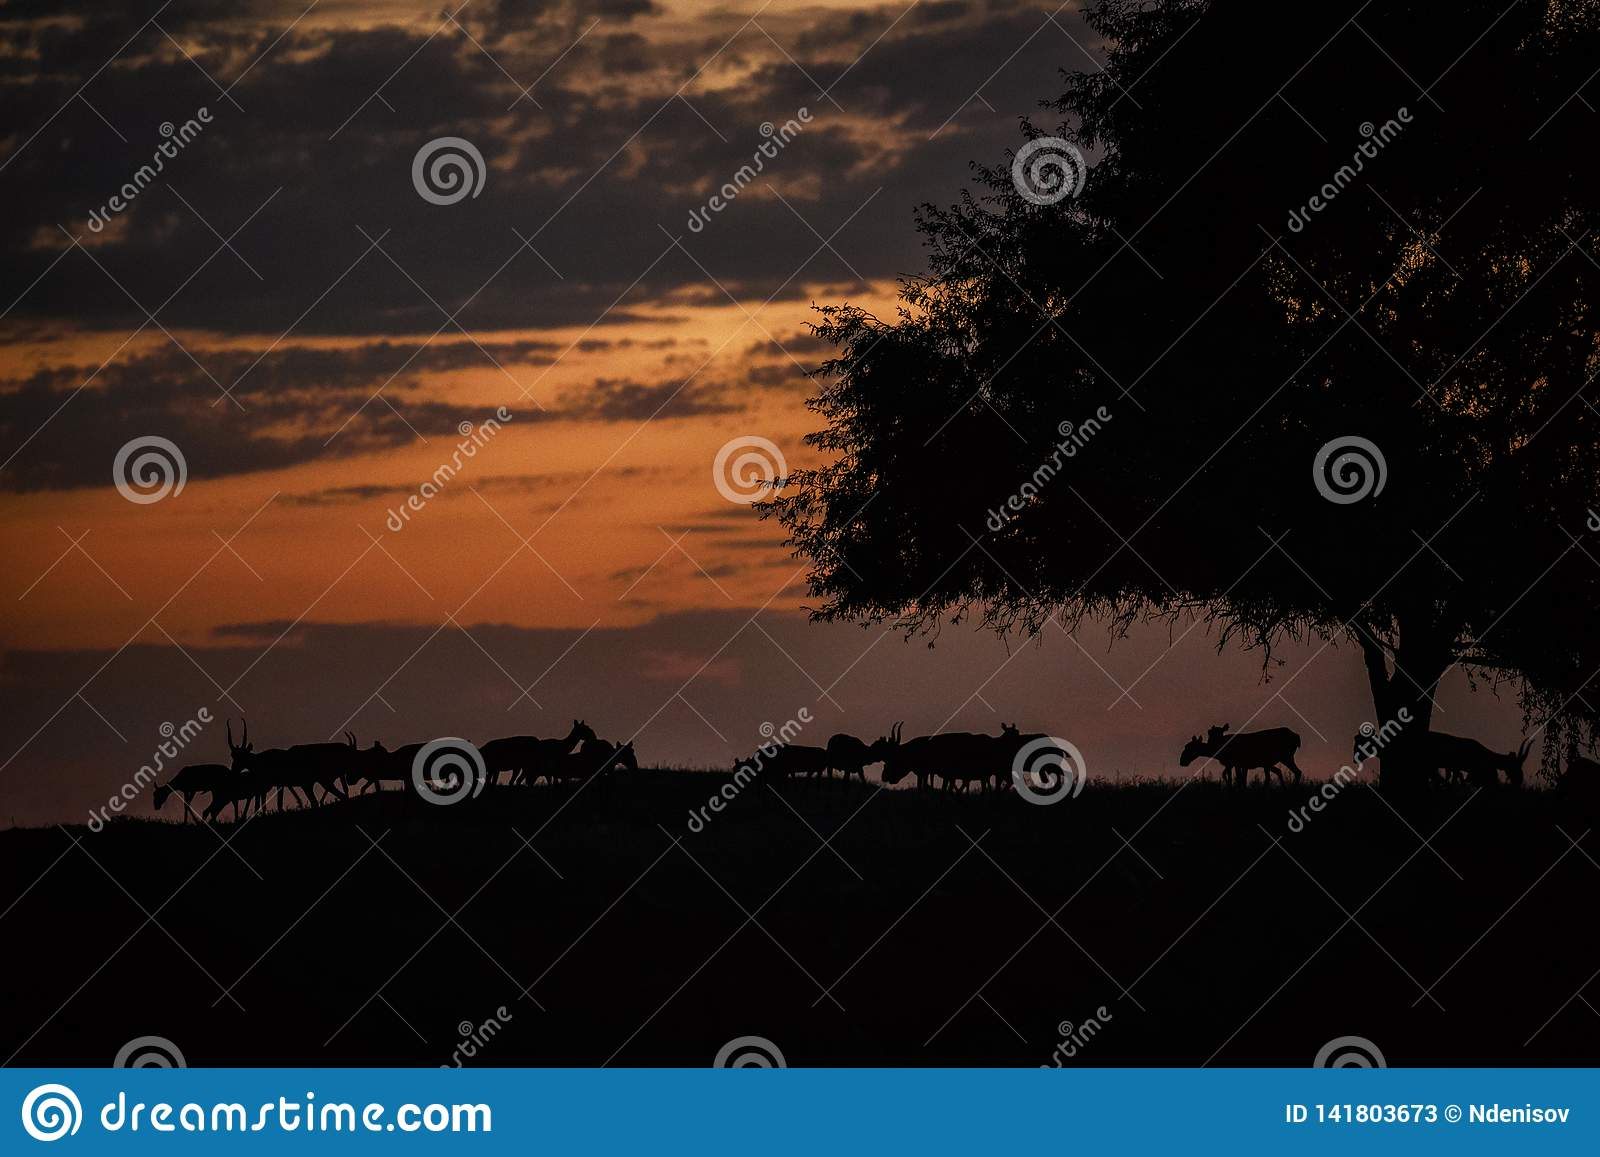 Silhouette of a saiga at sunset. Saiga tatarica is listed in the Red Book